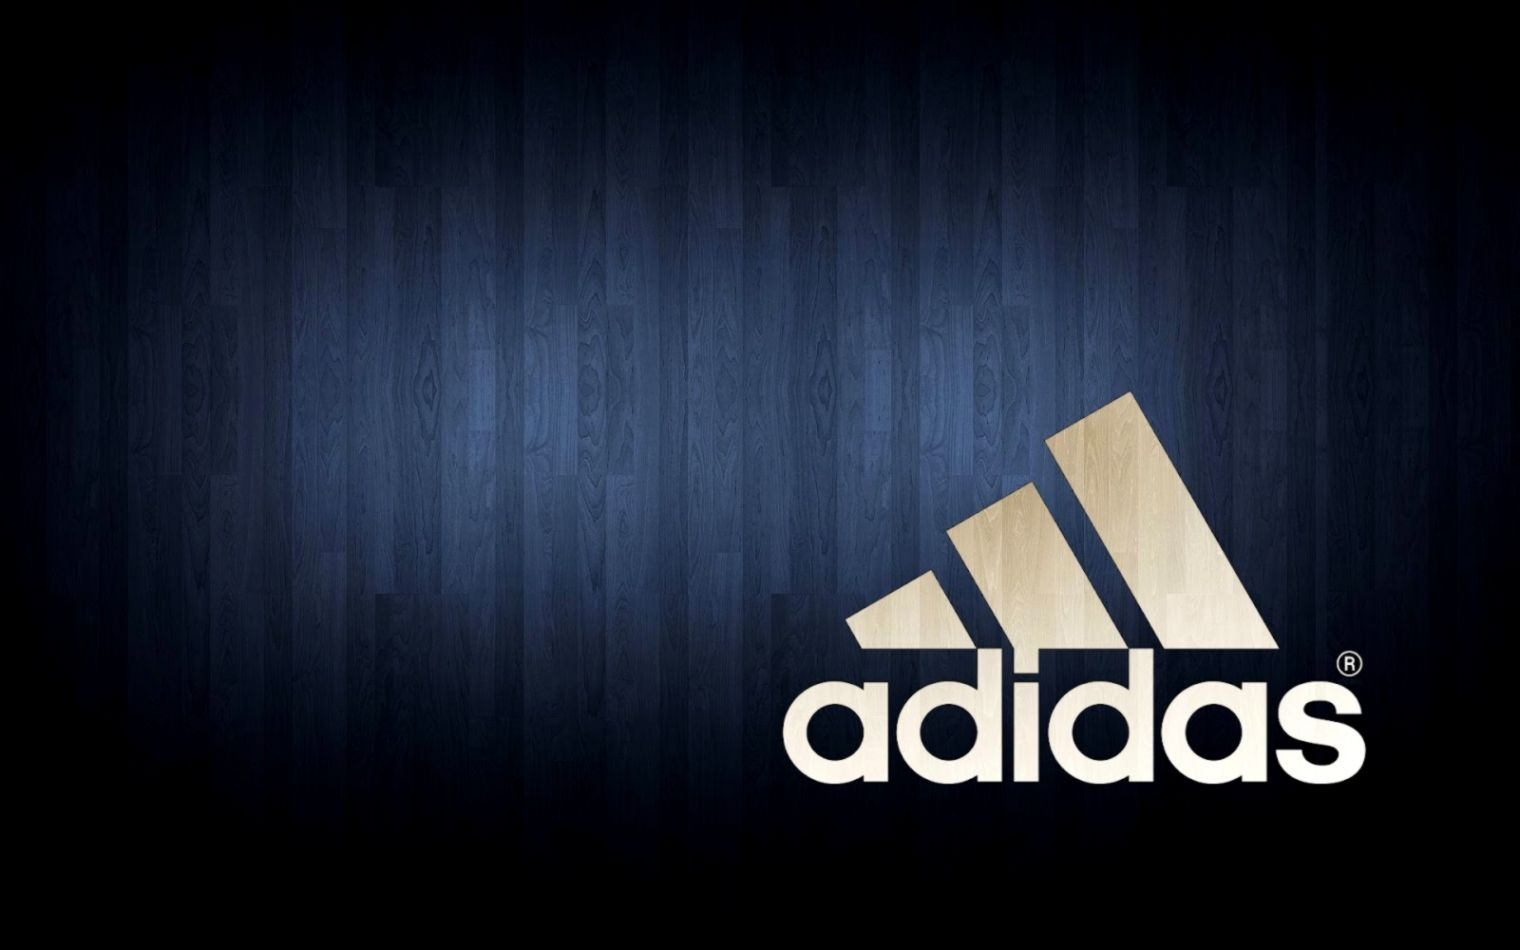 Adidas New Logo Desktop Design Opera Wallpapers